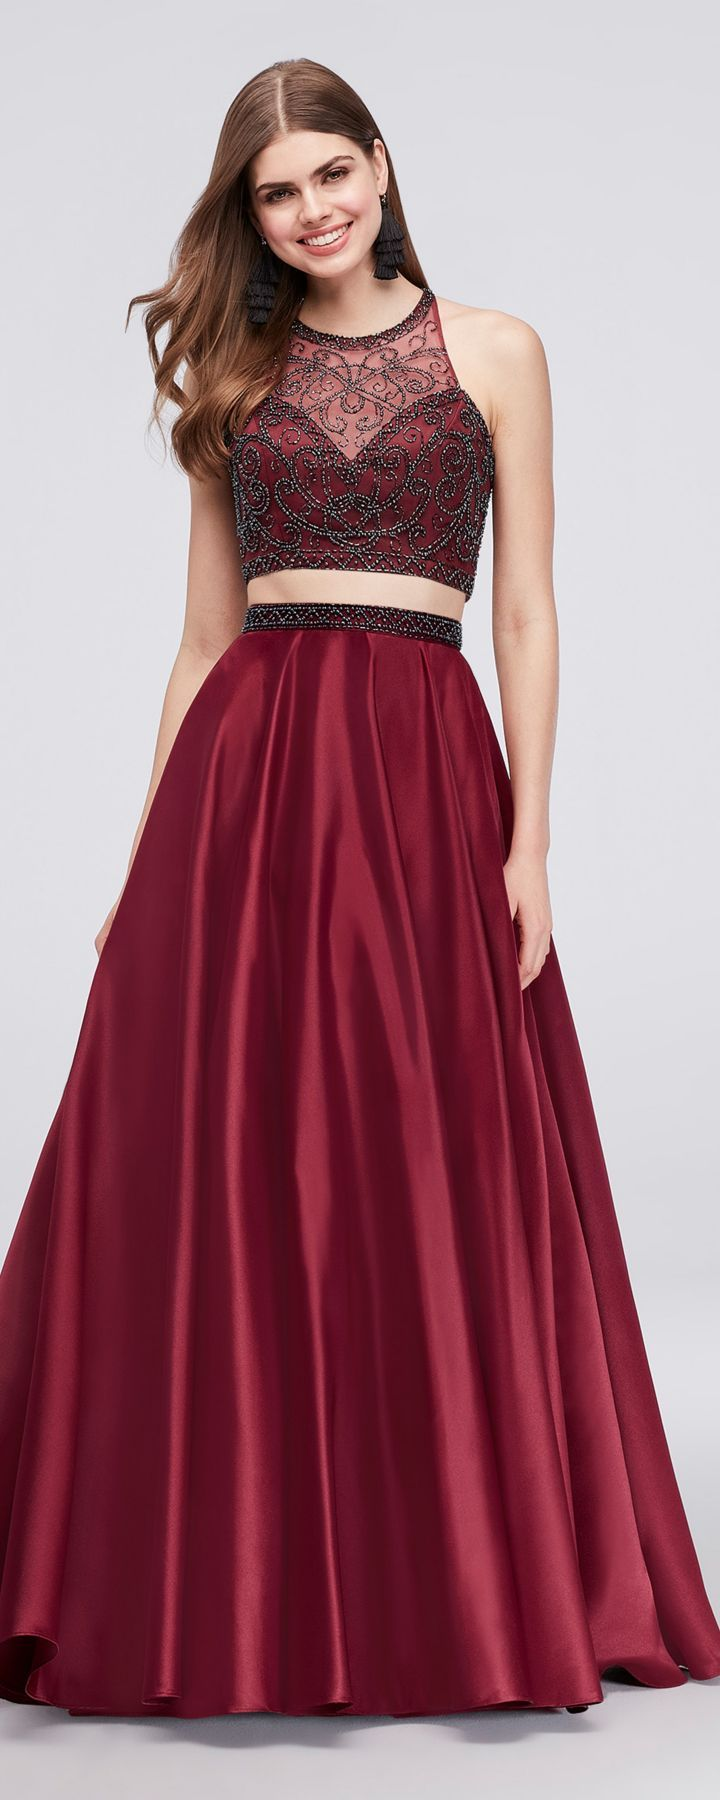 Two Pieces Wine Ball Gown Prom Dresses Prom Dresses Weddingideas Prom Dresses Dresses Prom Dresses Ball Gown [ 1800 x 720 Pixel ]